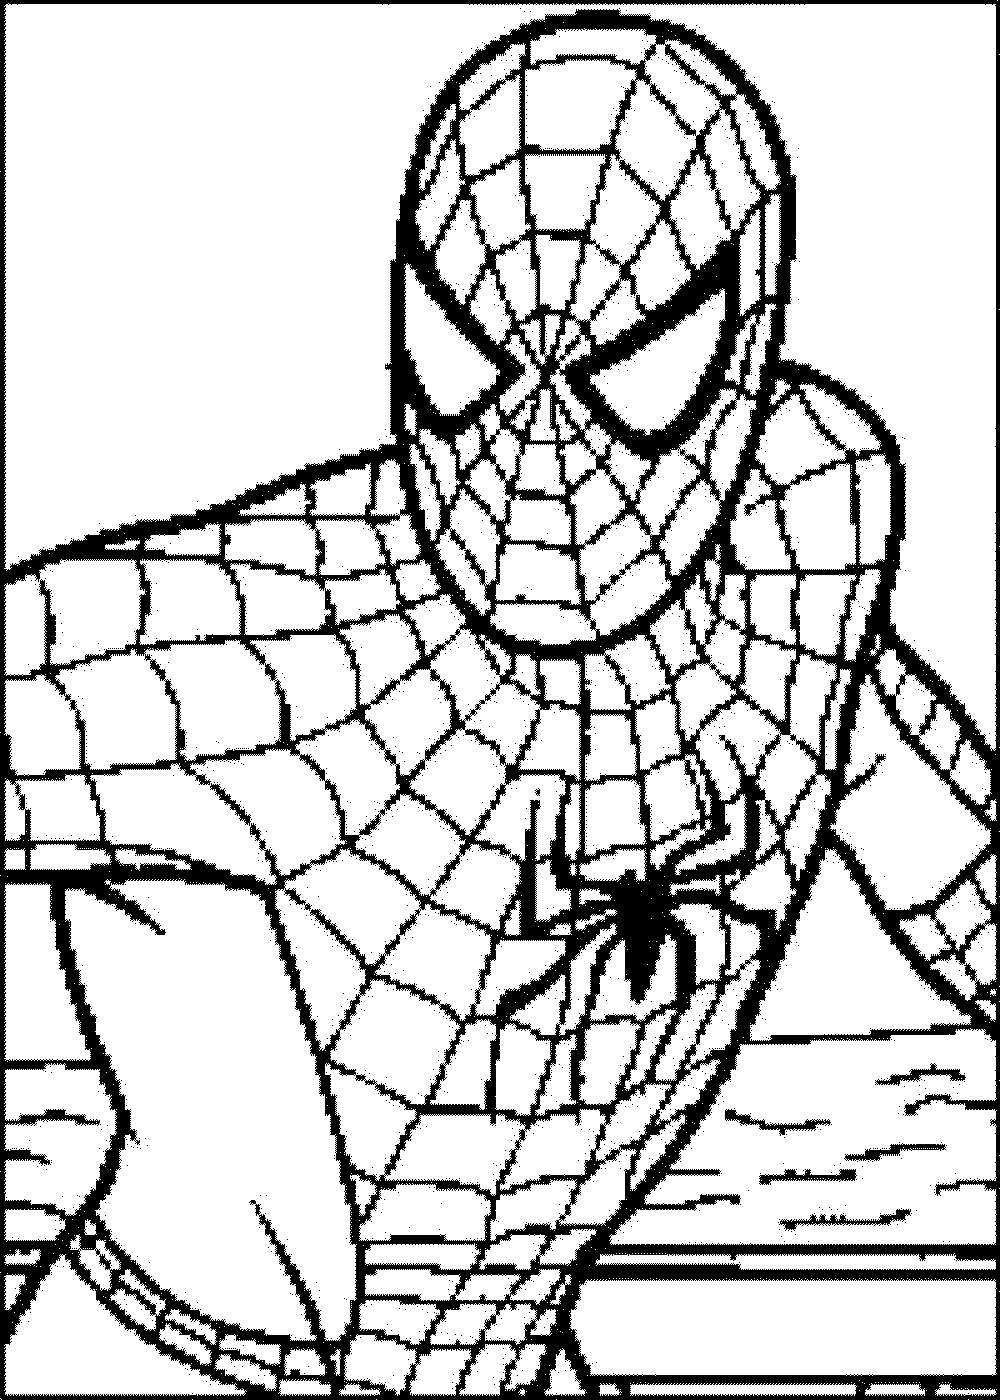 coloring pictures of spiderman coloring pictures of spiderman pictures gallery show spiderman pictures of coloring